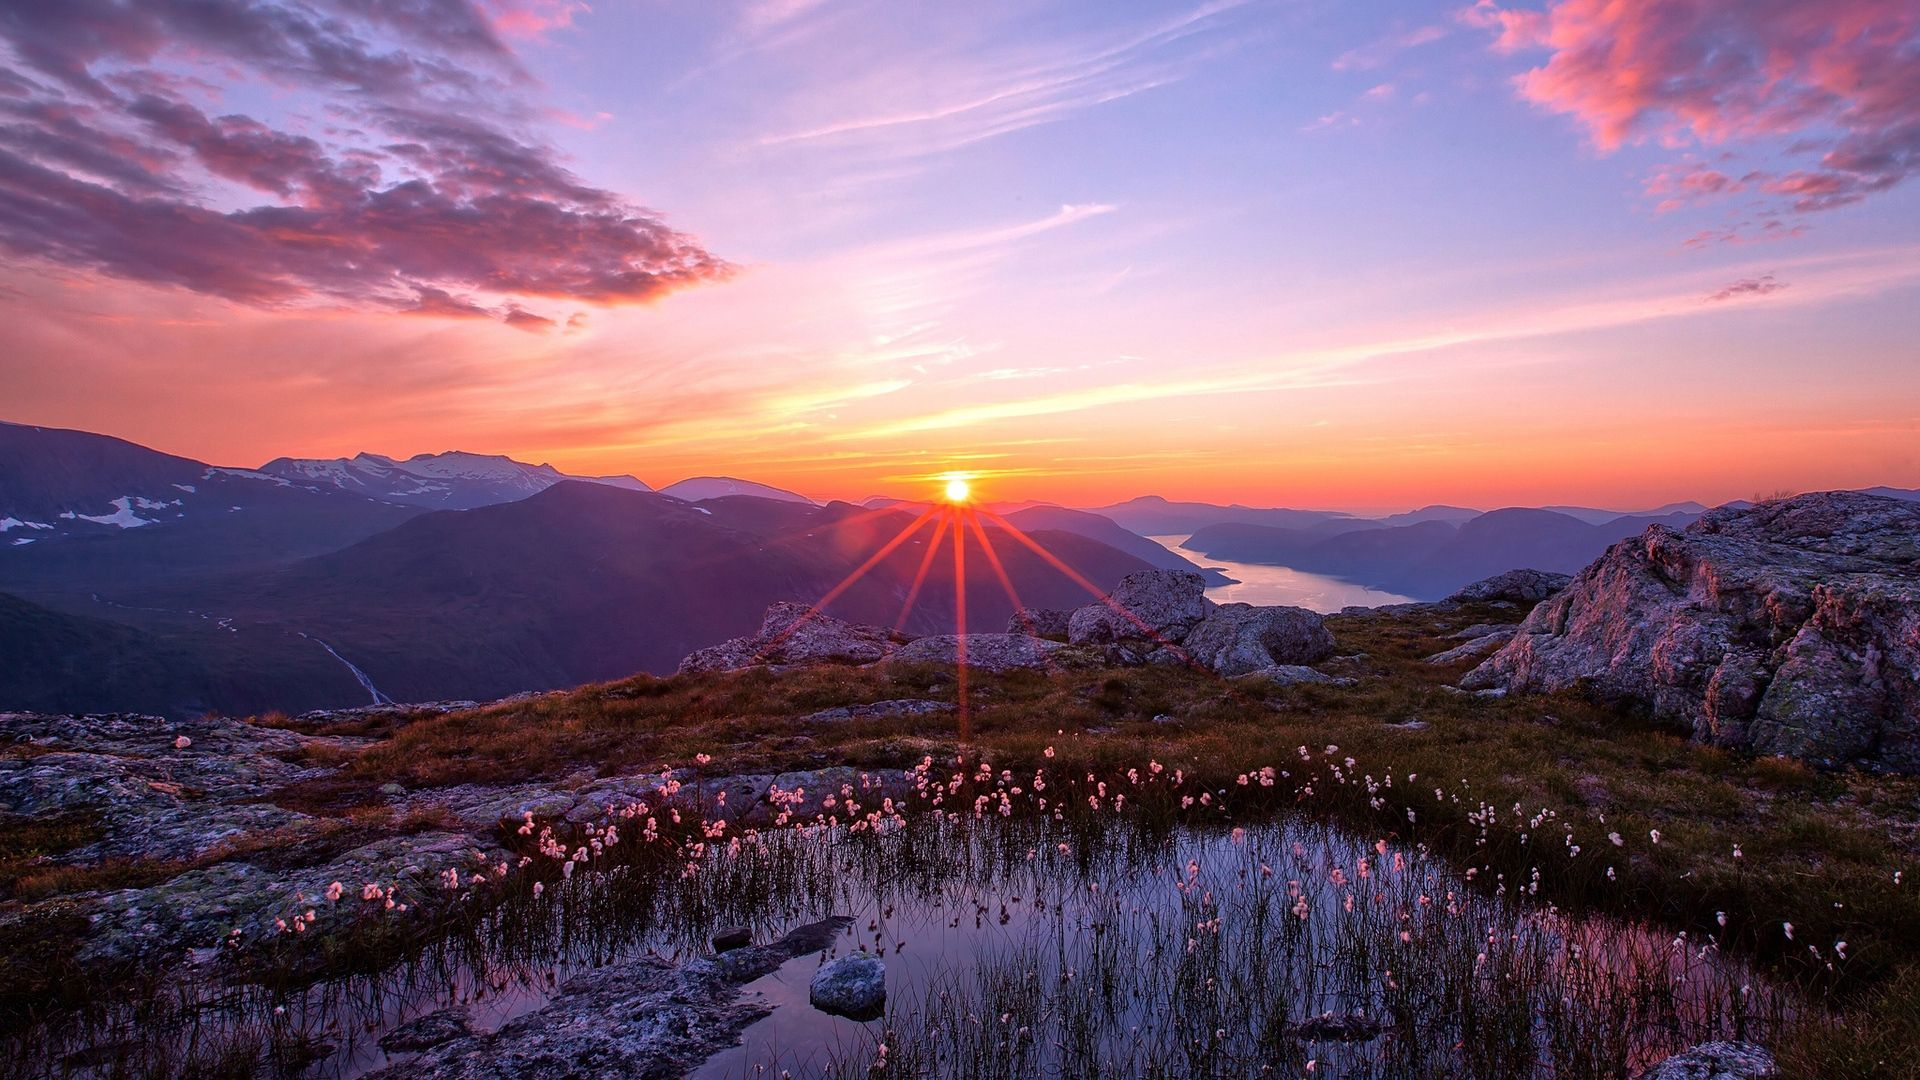 Sunset In The Mountains Images